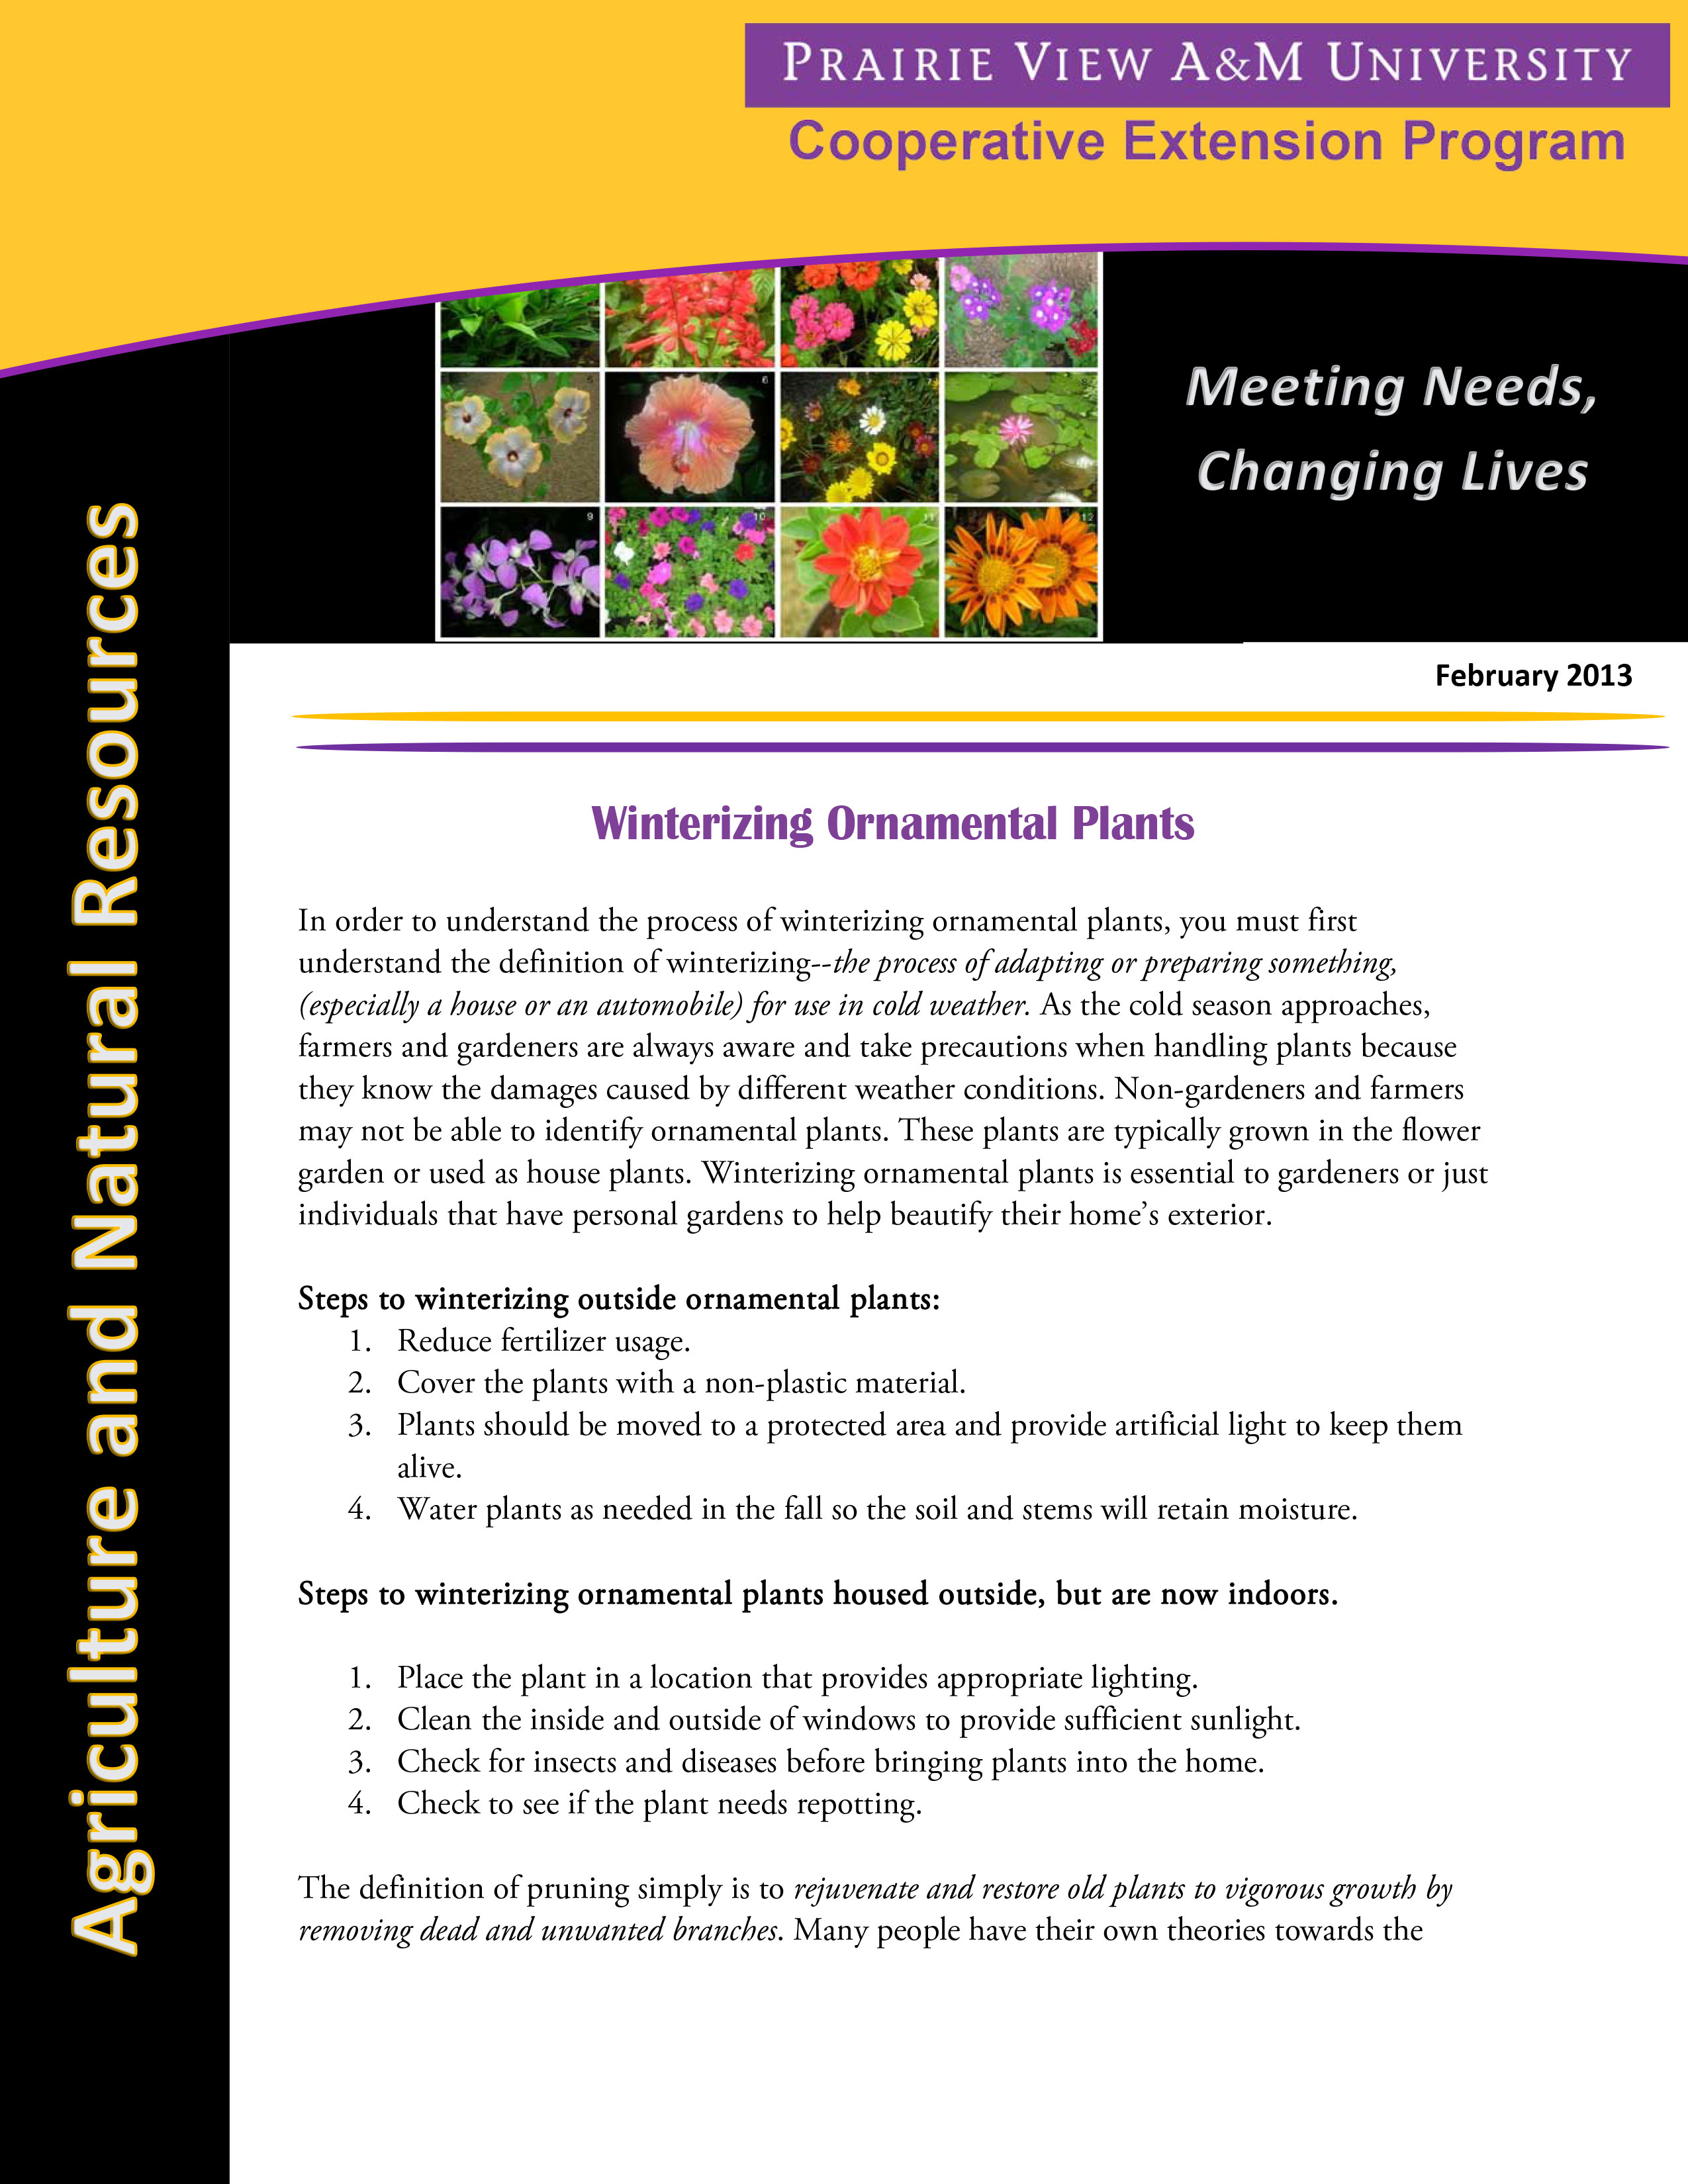 Winterizing Ornamental Plants